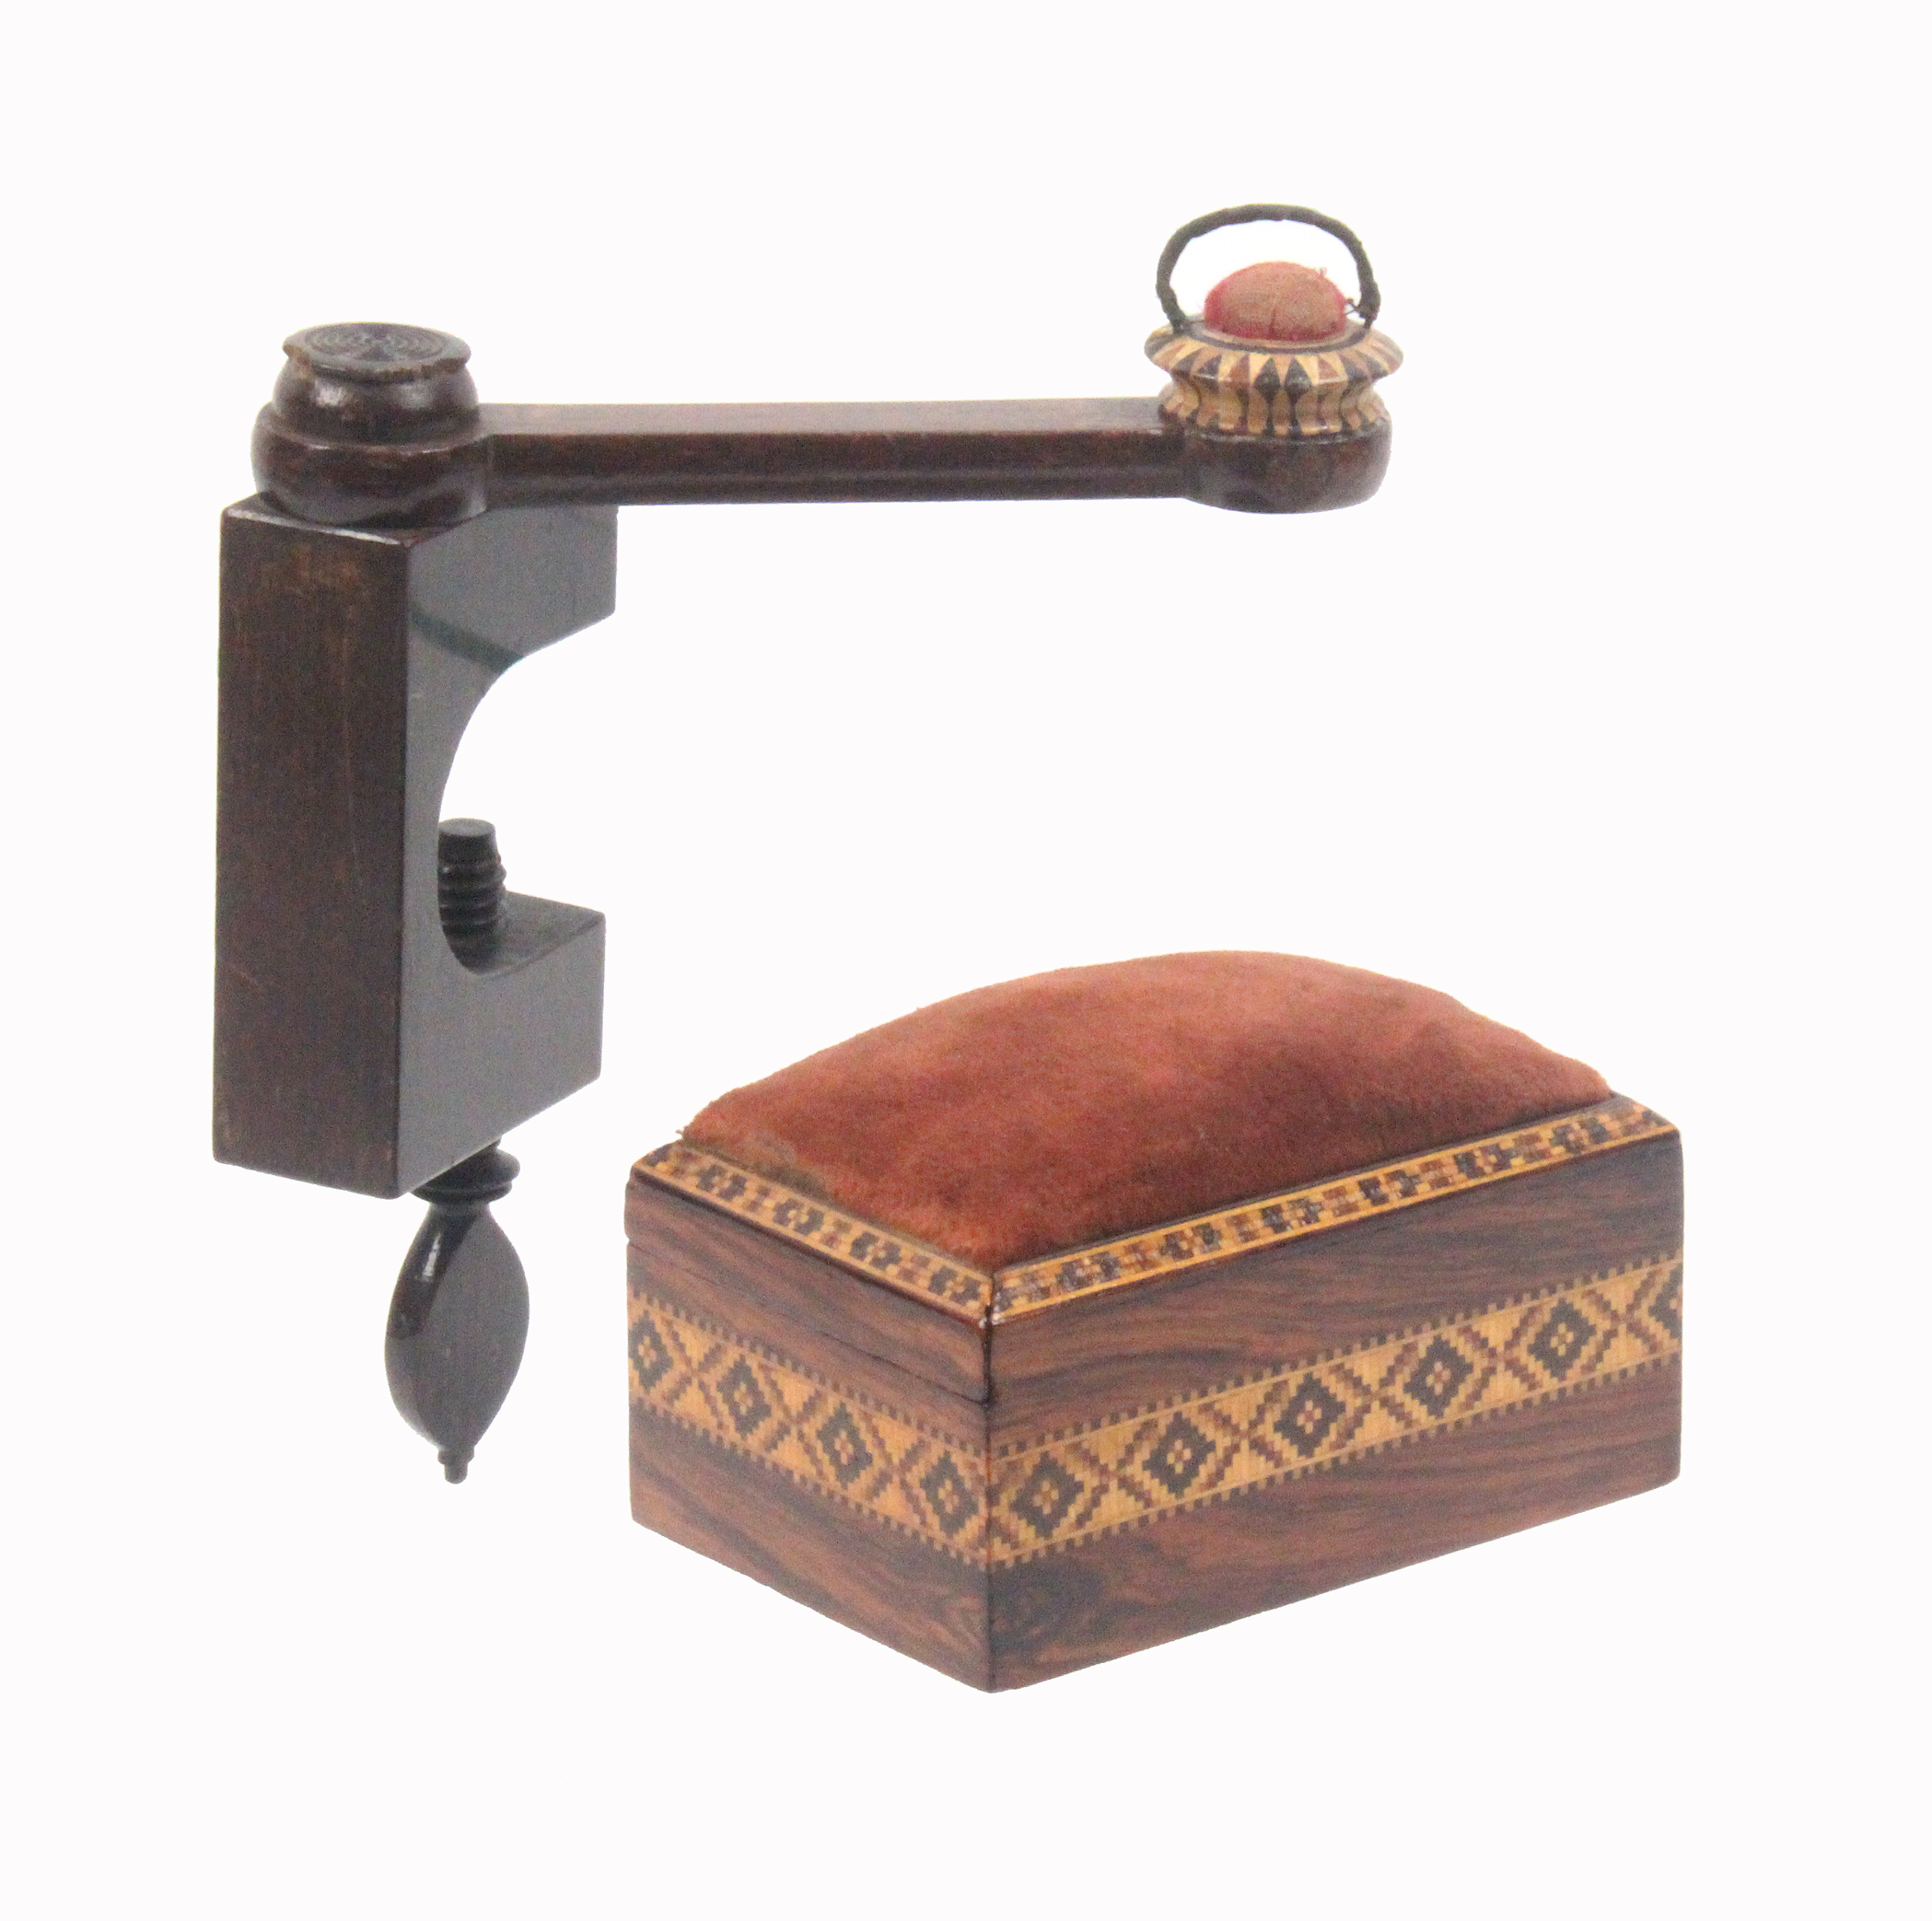 Tunbridge ware - sewing - two pieces, comprising a block form rosewood clamp with a swing arm